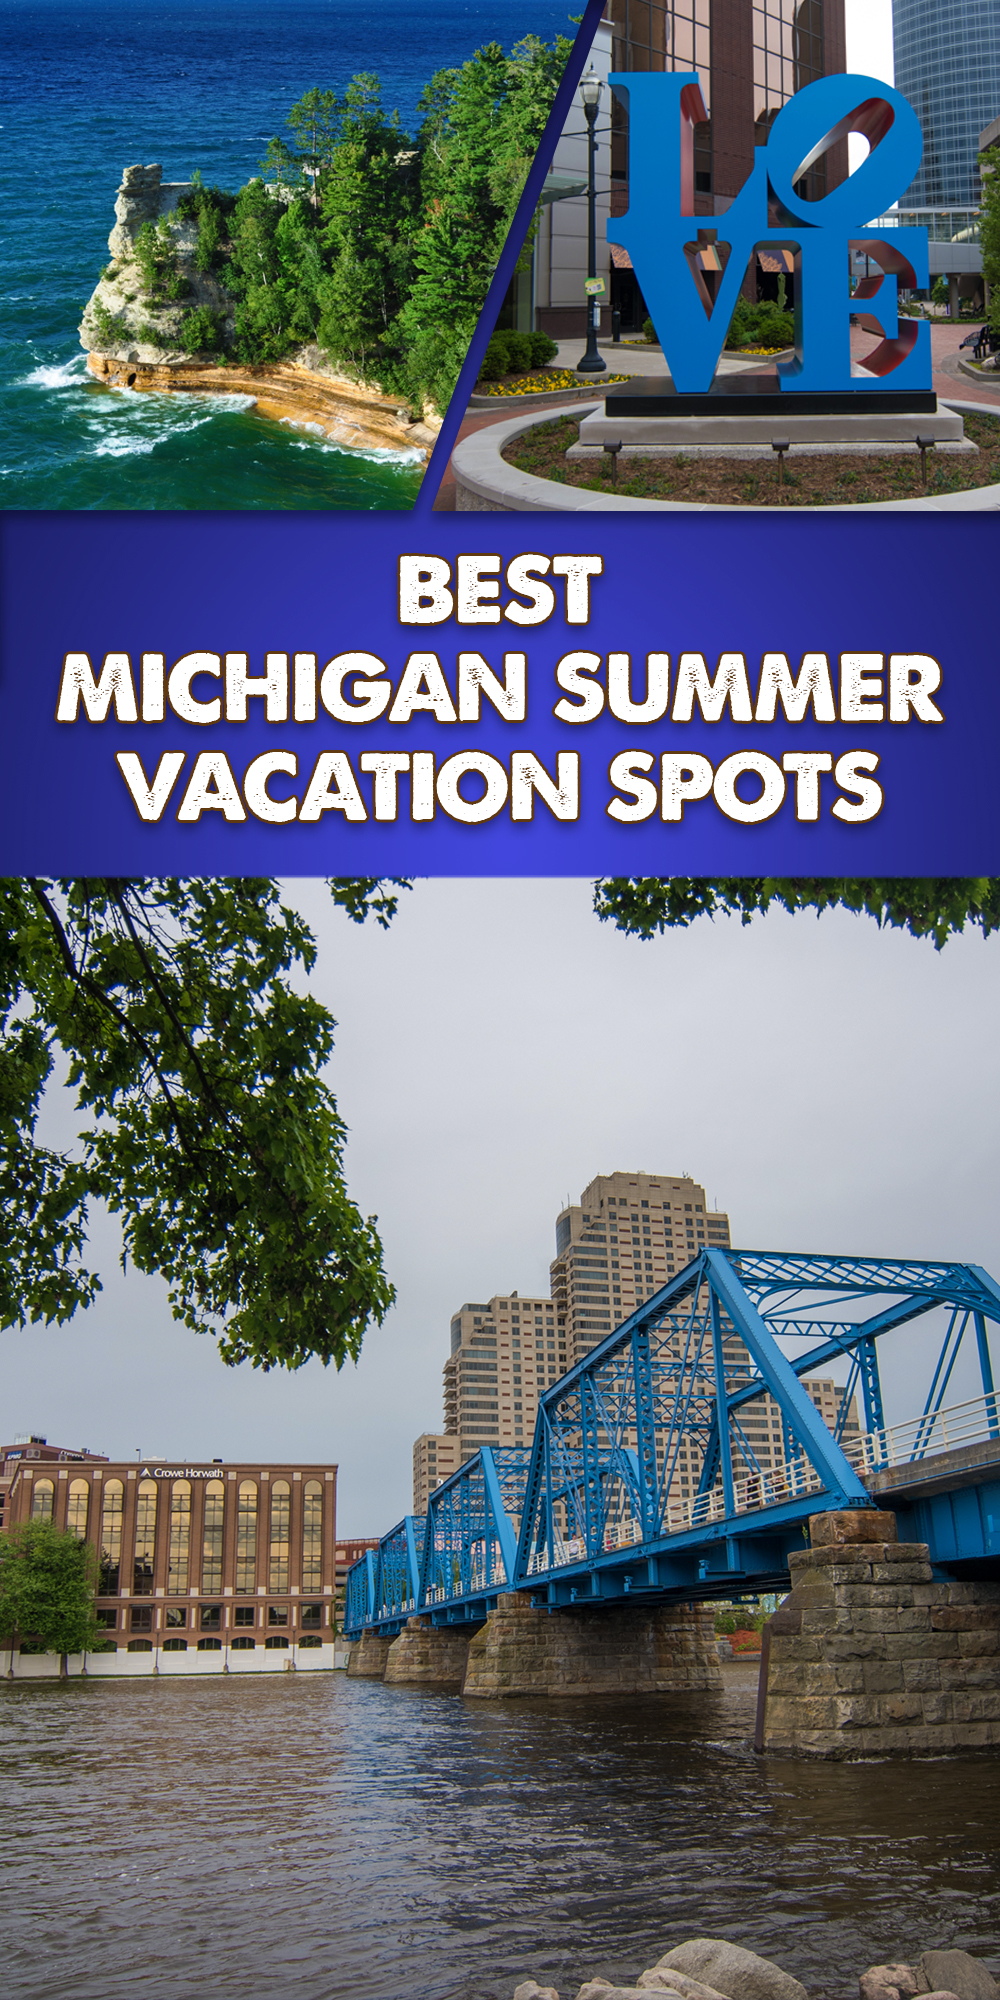 A guide to the Best Michigan Summer Vacation Spots. Discover the natural and diverse beauty of Michigan. Dip your toes into Lake Michigan, kayak in the largest great lake, go blueberry picking, or enjoy a glass of Michigan wine. #Michigan #summer #travel #Midwest #PureMichigan #Beach #getaway #Lake #Beer #nature #kayaking #mackinac #picturedrocks #holland #saugatuck #grandrapids